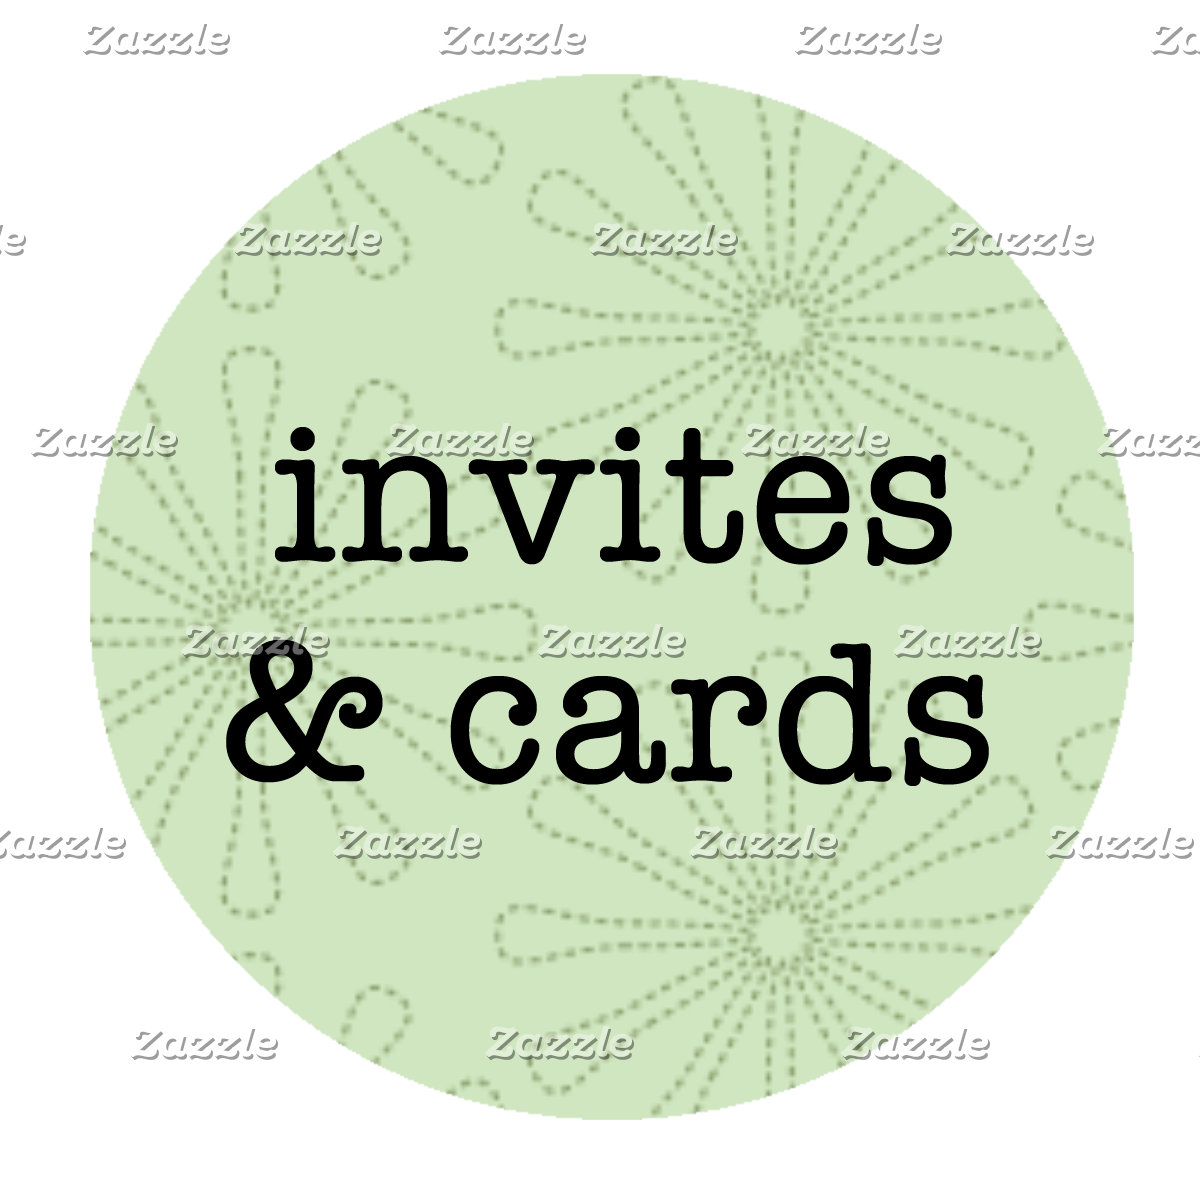 Invites and Cards